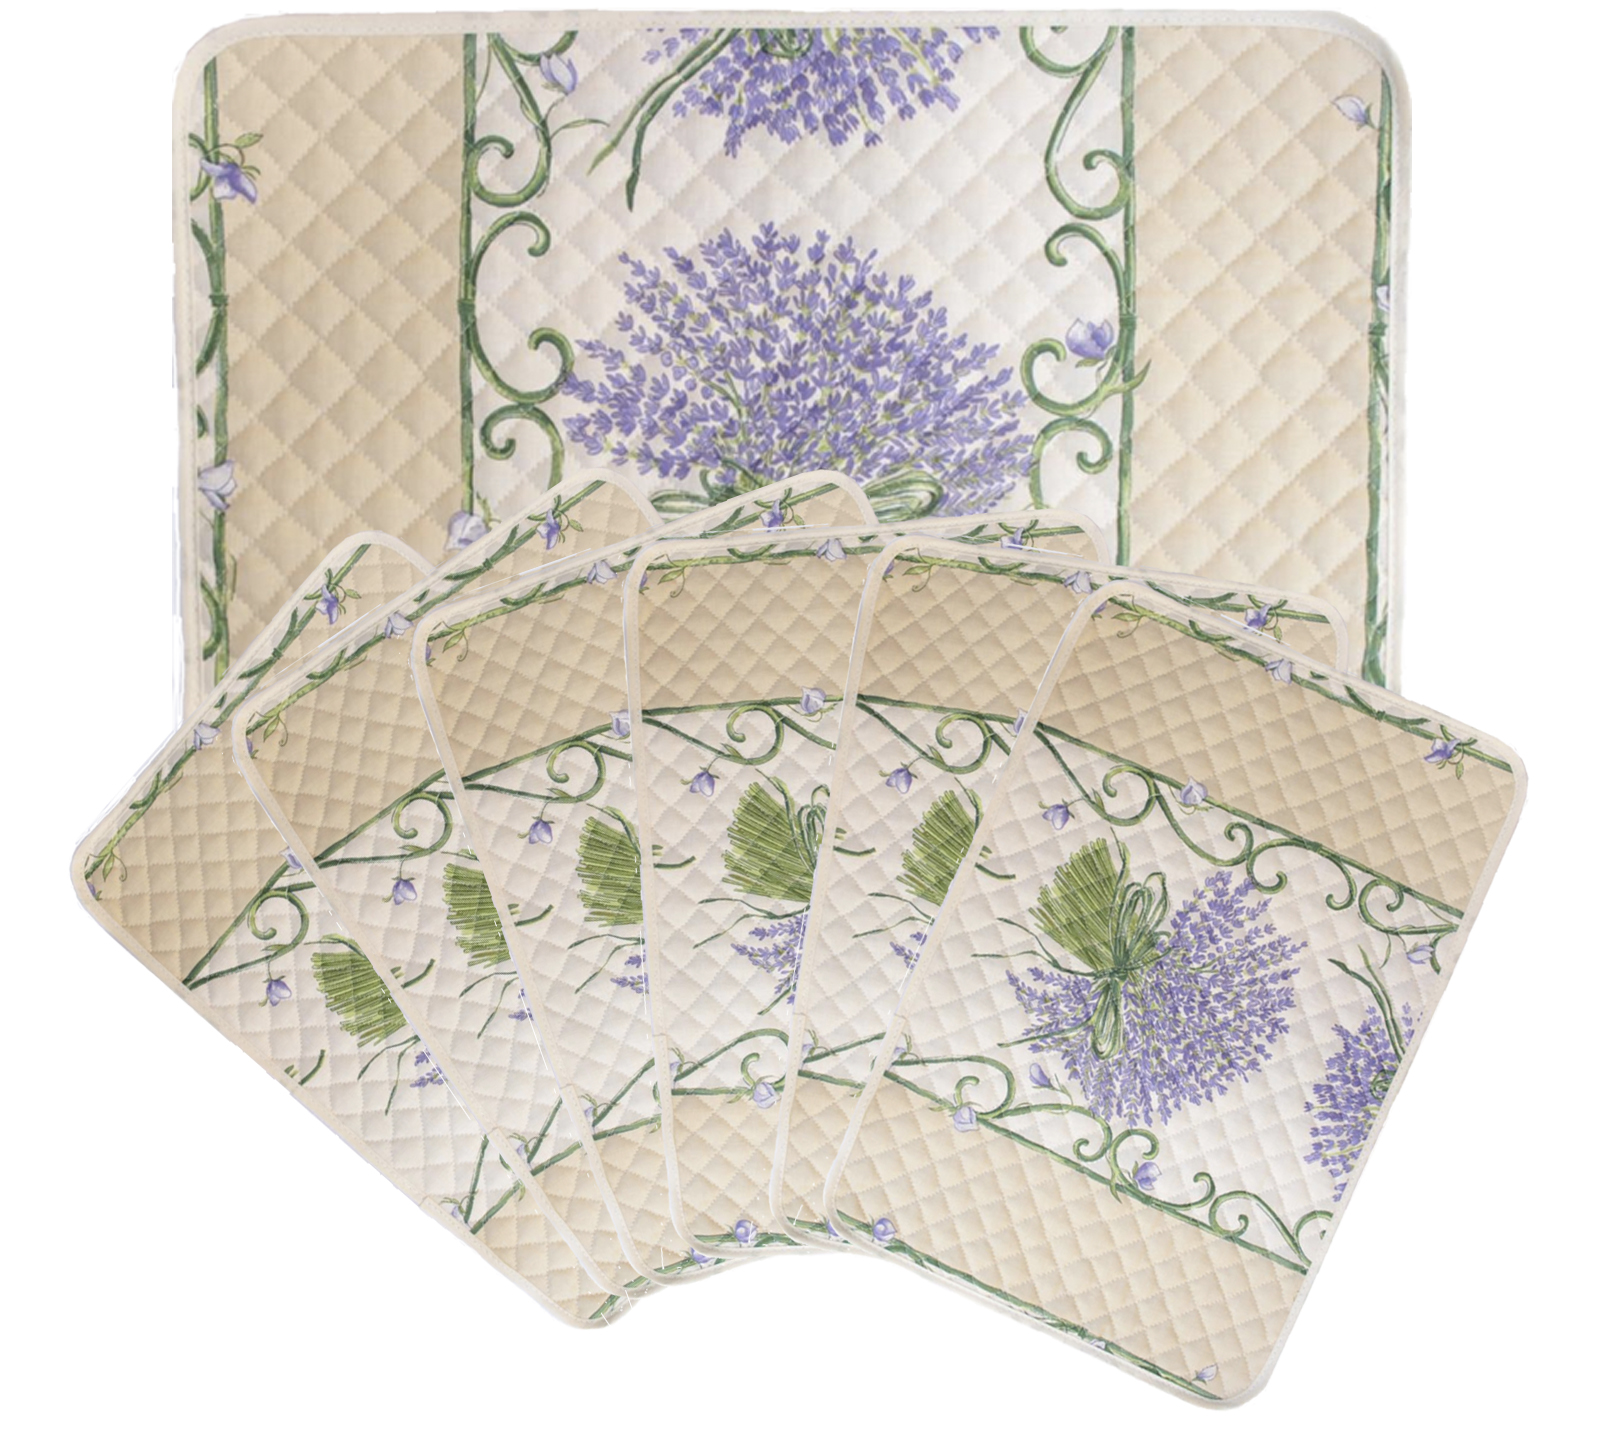 """French Acrylic Coated Placemats Collection """"Bouquet"""" Cream: Lavender Motif, Size 17"""" x 11"""", Price $94.95 for a Set of 6"""